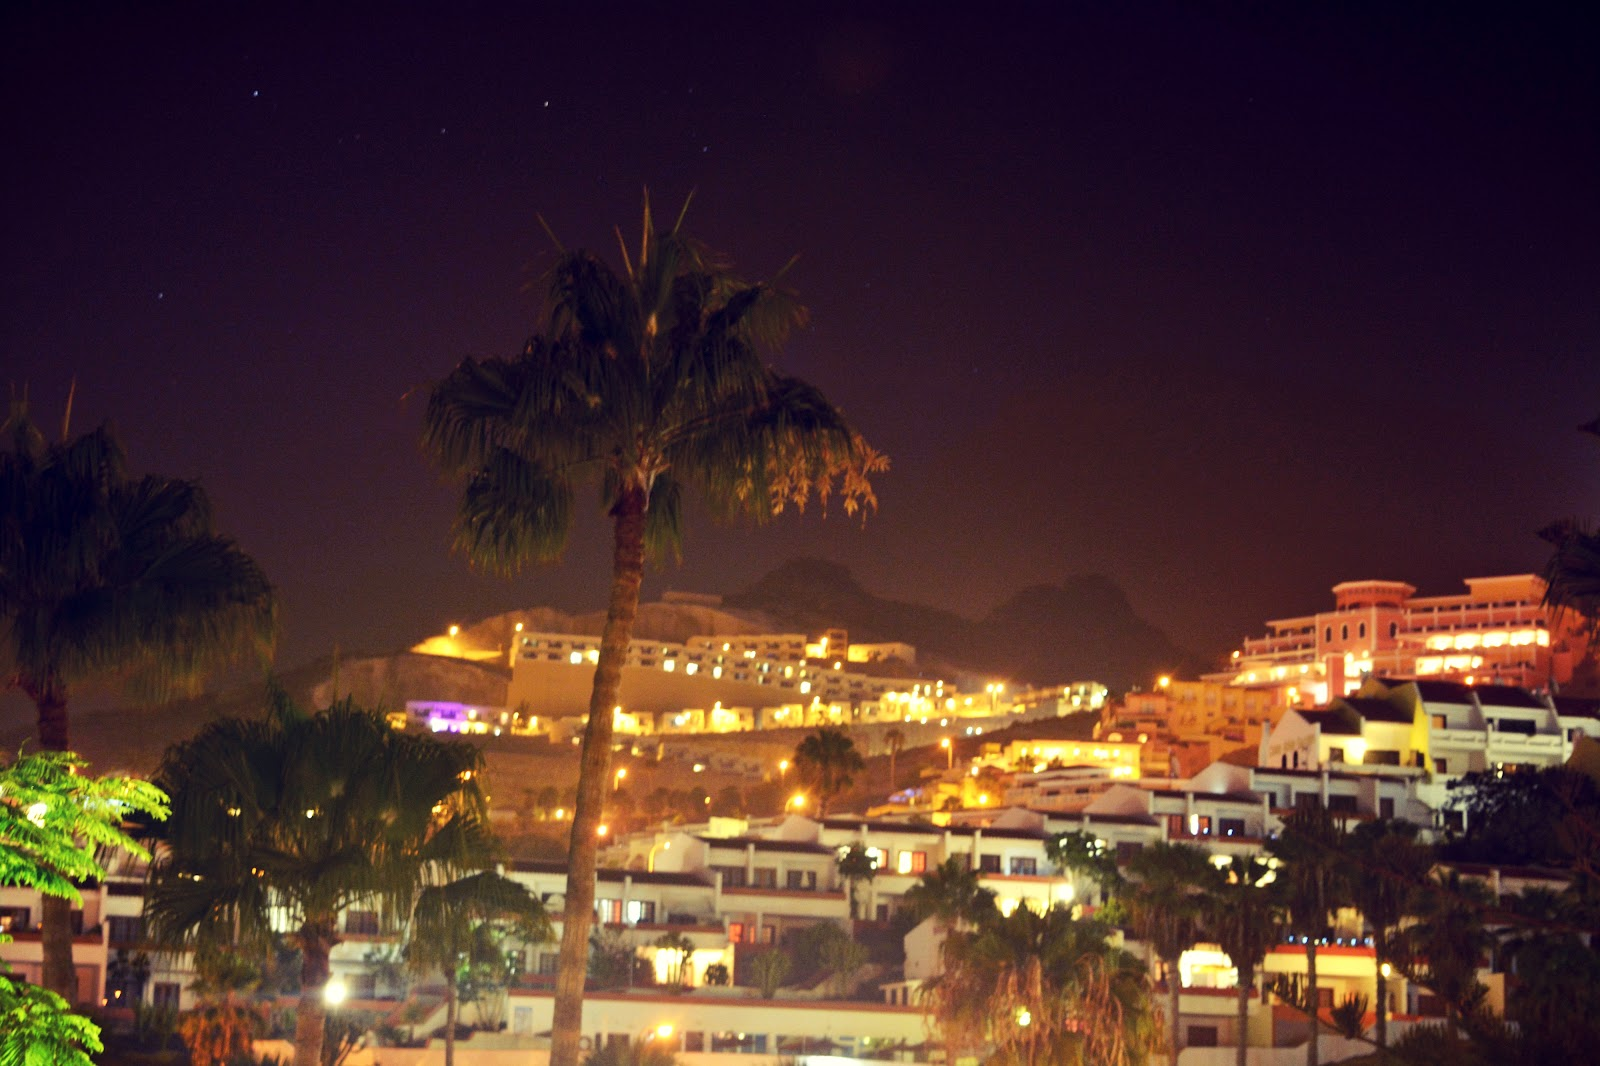 san eugenio by night.jpg